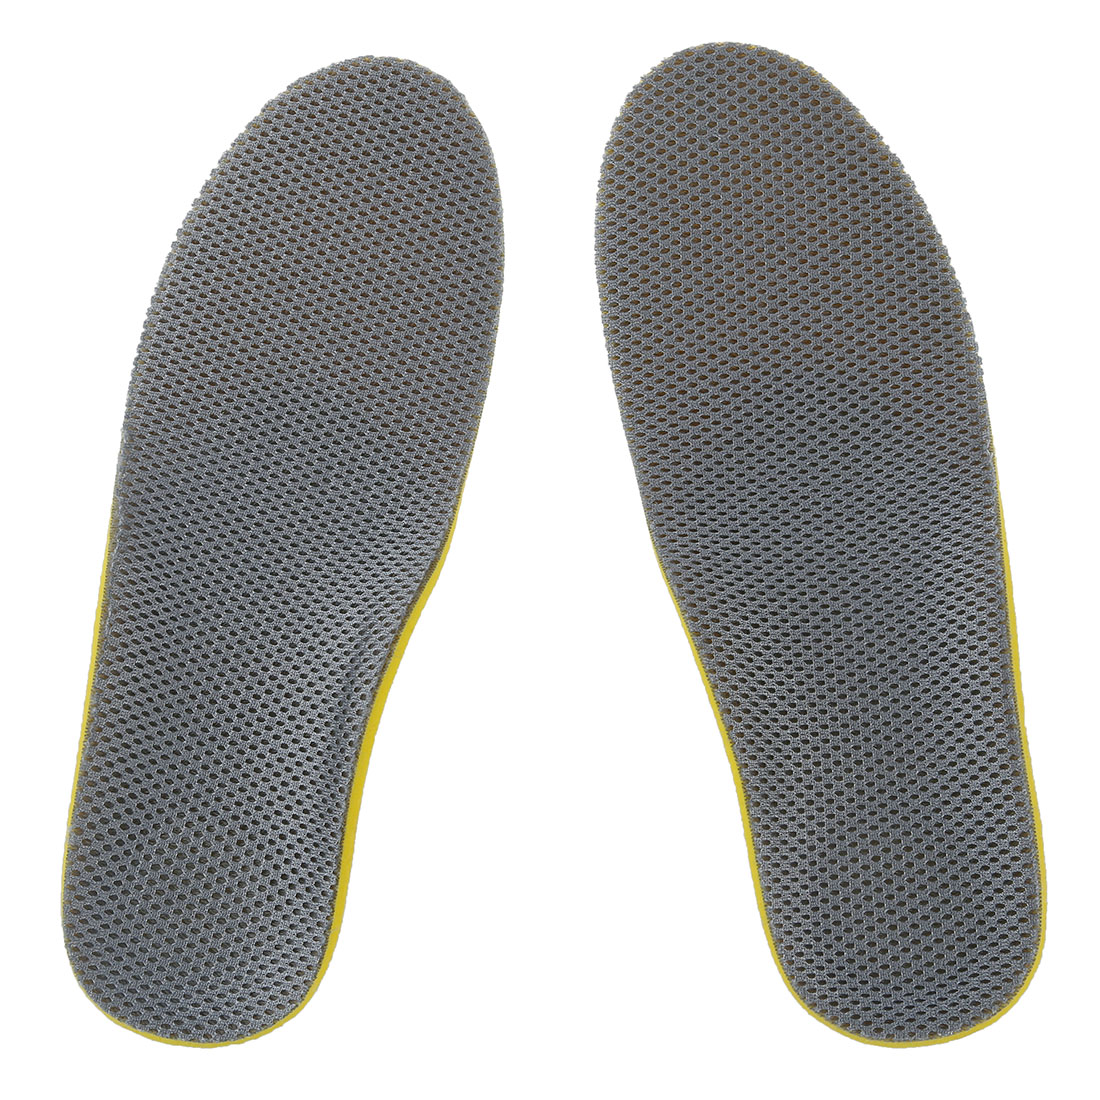 Comfortable Orthotic Shoes Insoles Inserts High Arch Support Pad expfoot orthotic arch support shoe pad orthopedic insoles pu insoles for shoes breathable foot pads massage sport insole 045